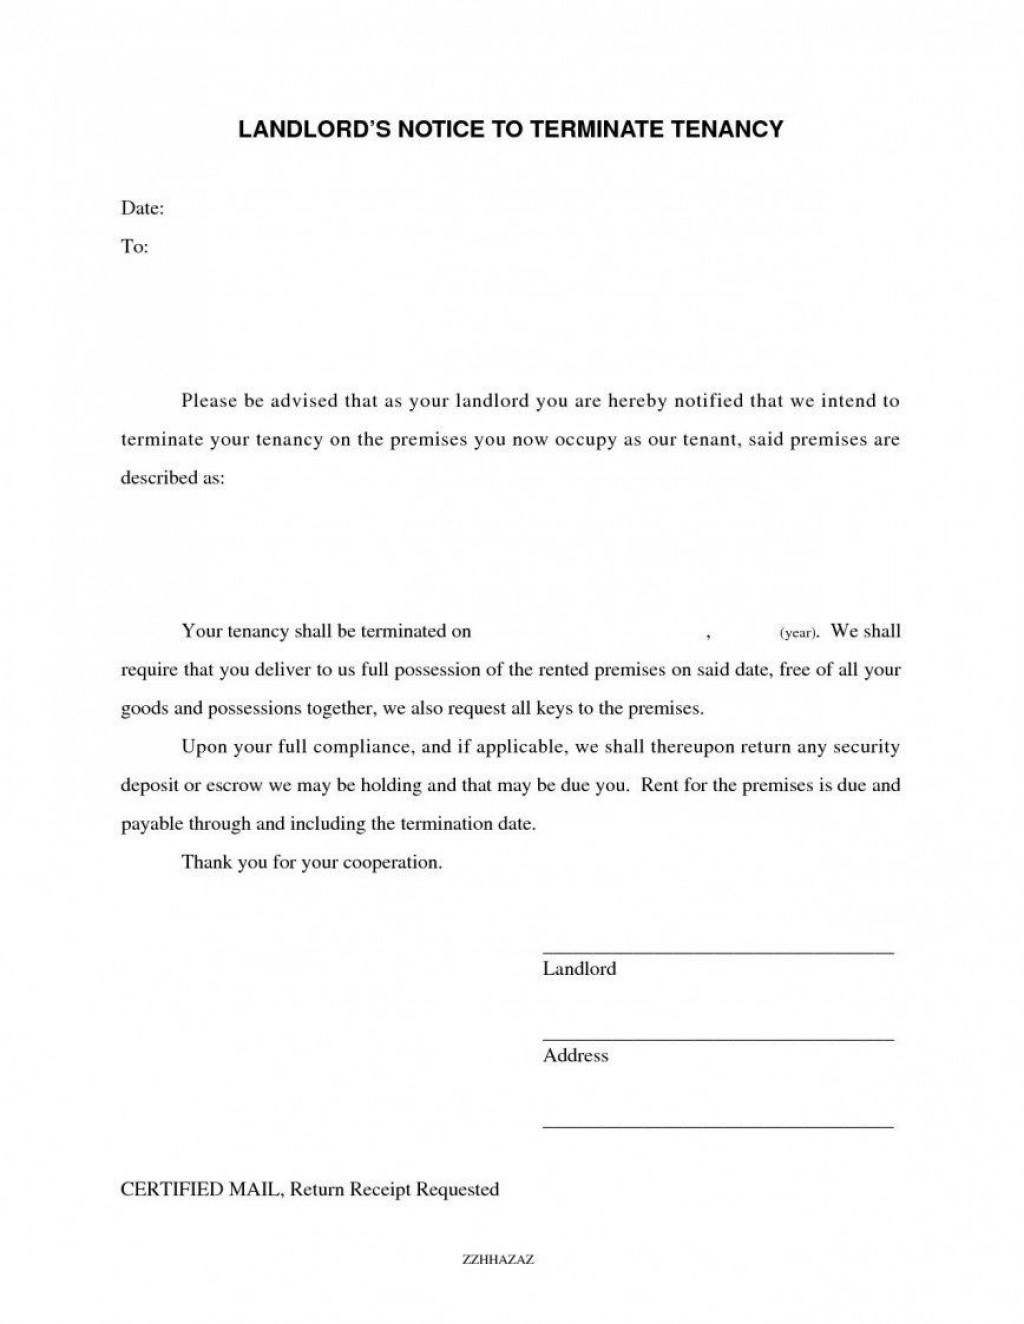 008 Frightening Template Letter To Terminate Rental Agreement Photo  End Tenancy For Landlord EndingLarge